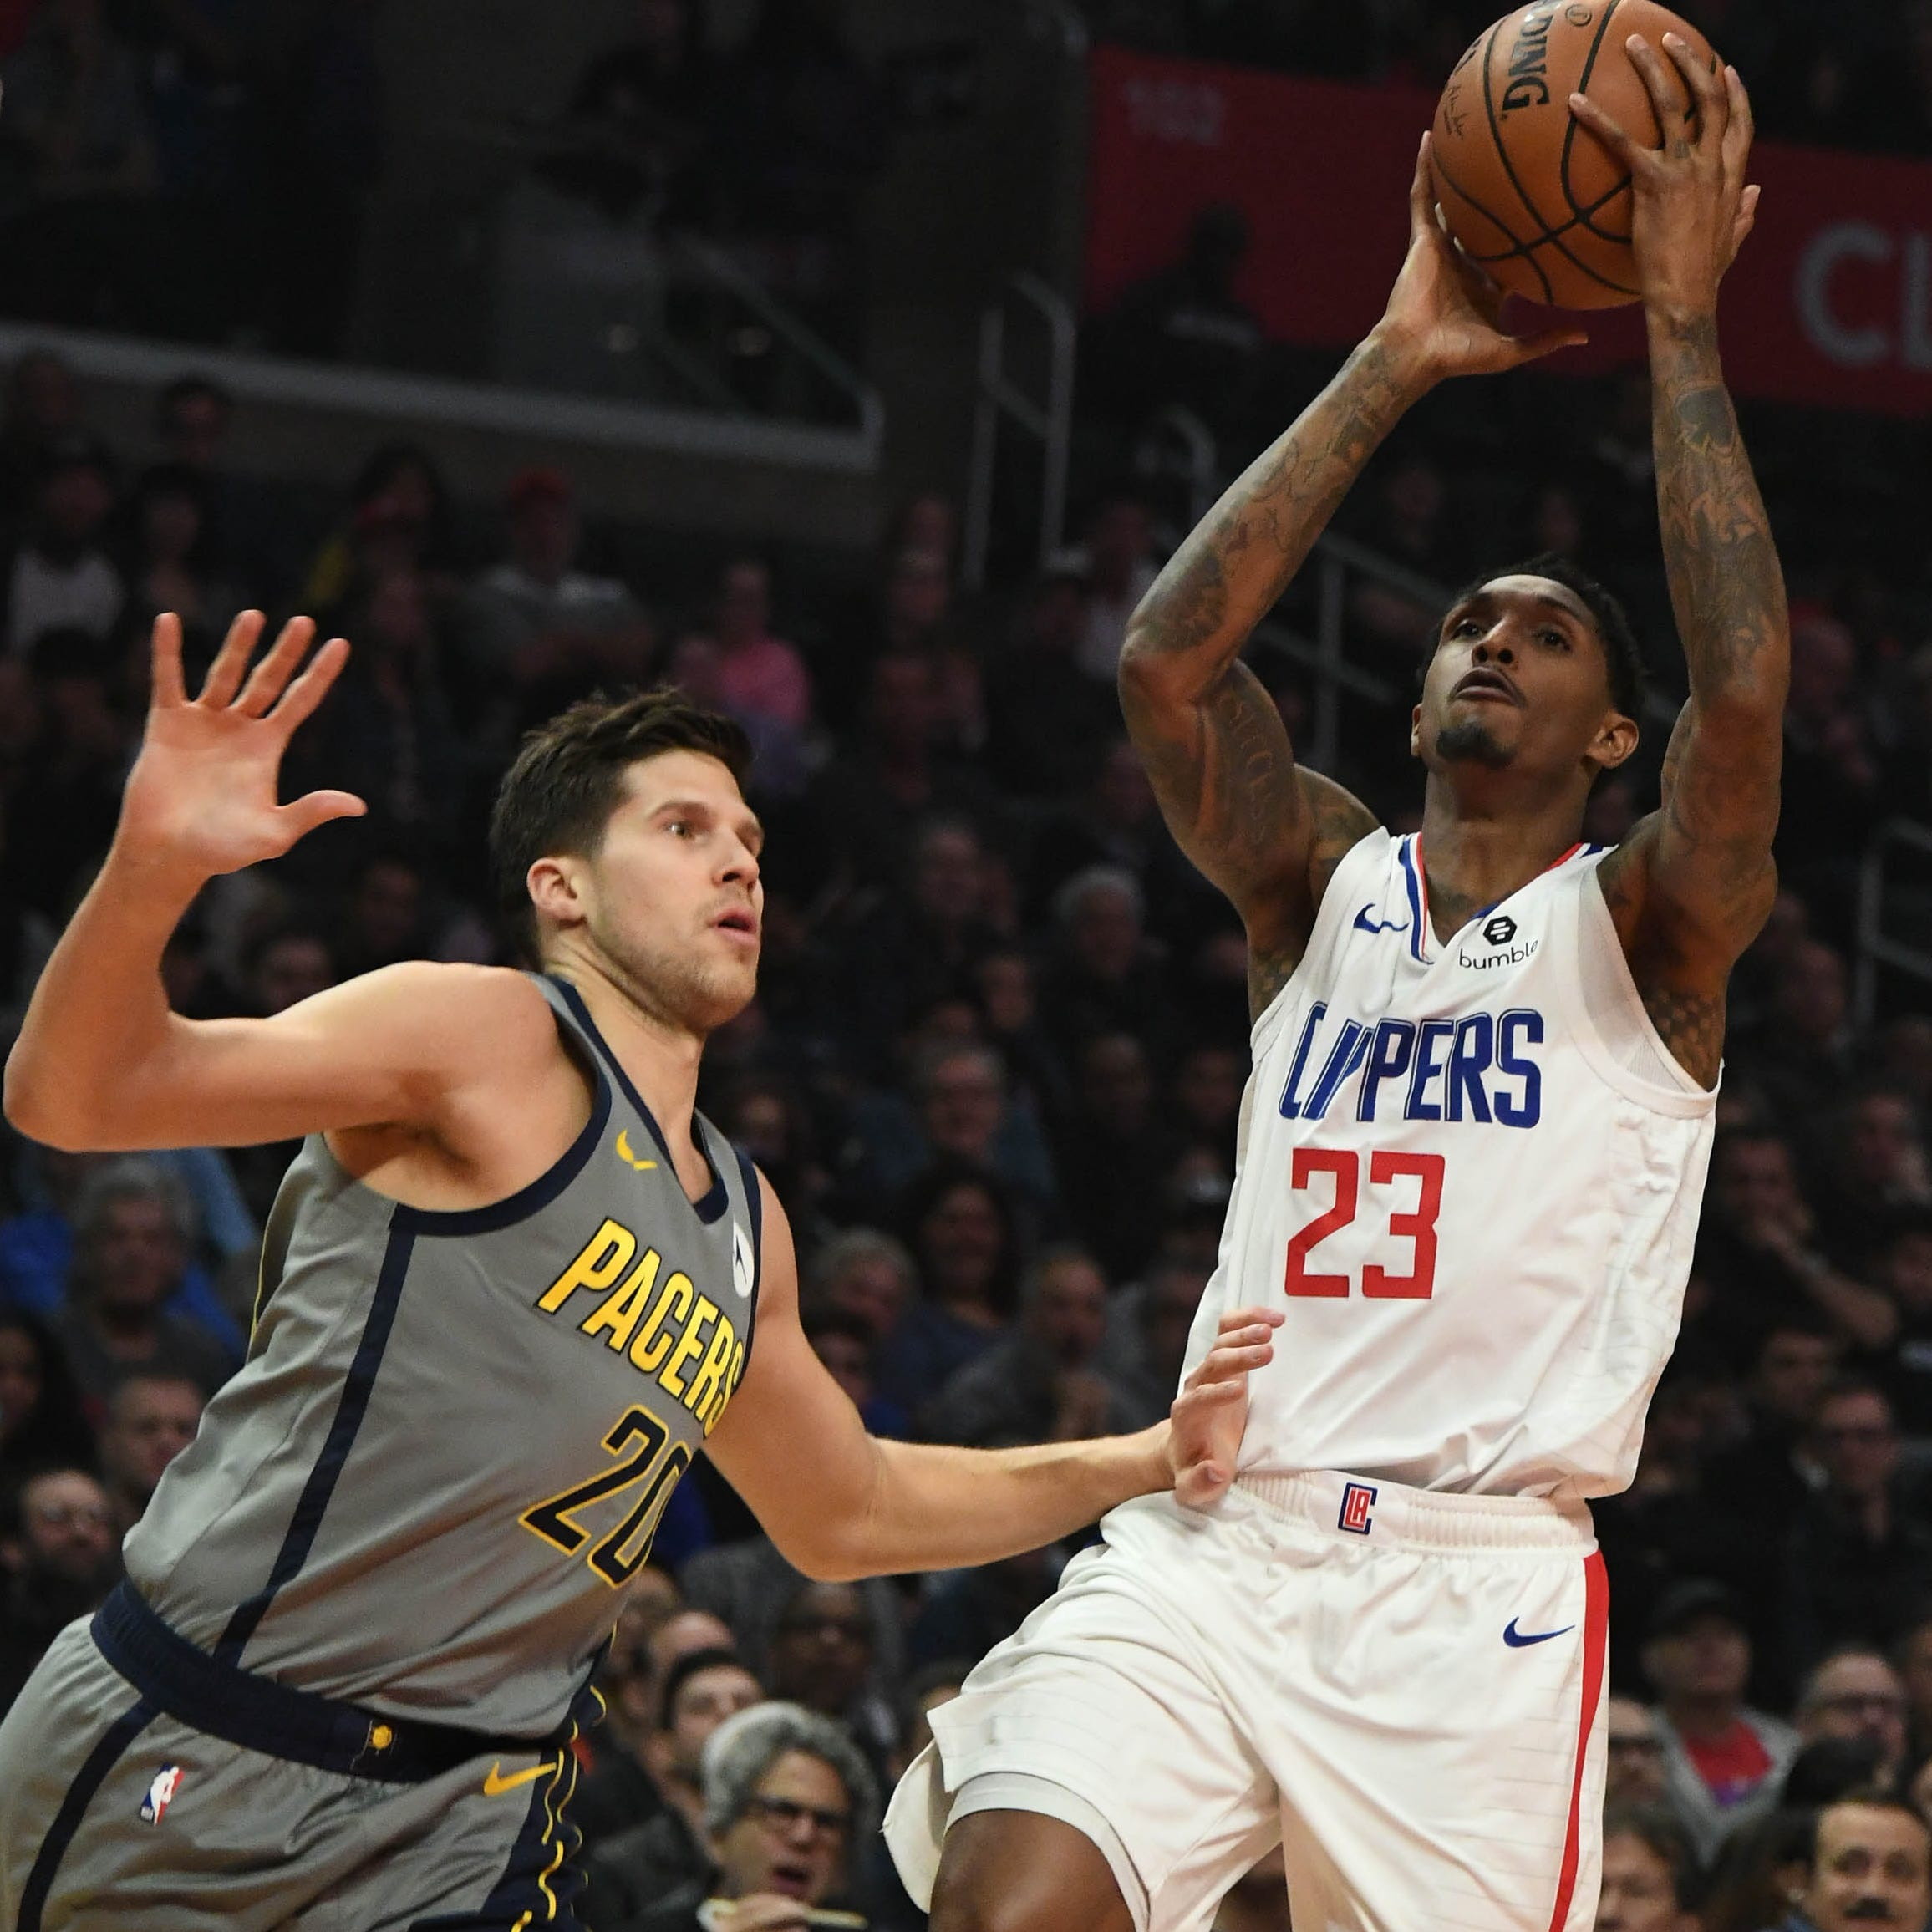 Insider: Pacers facing winless road trip after loss vs. Clippers